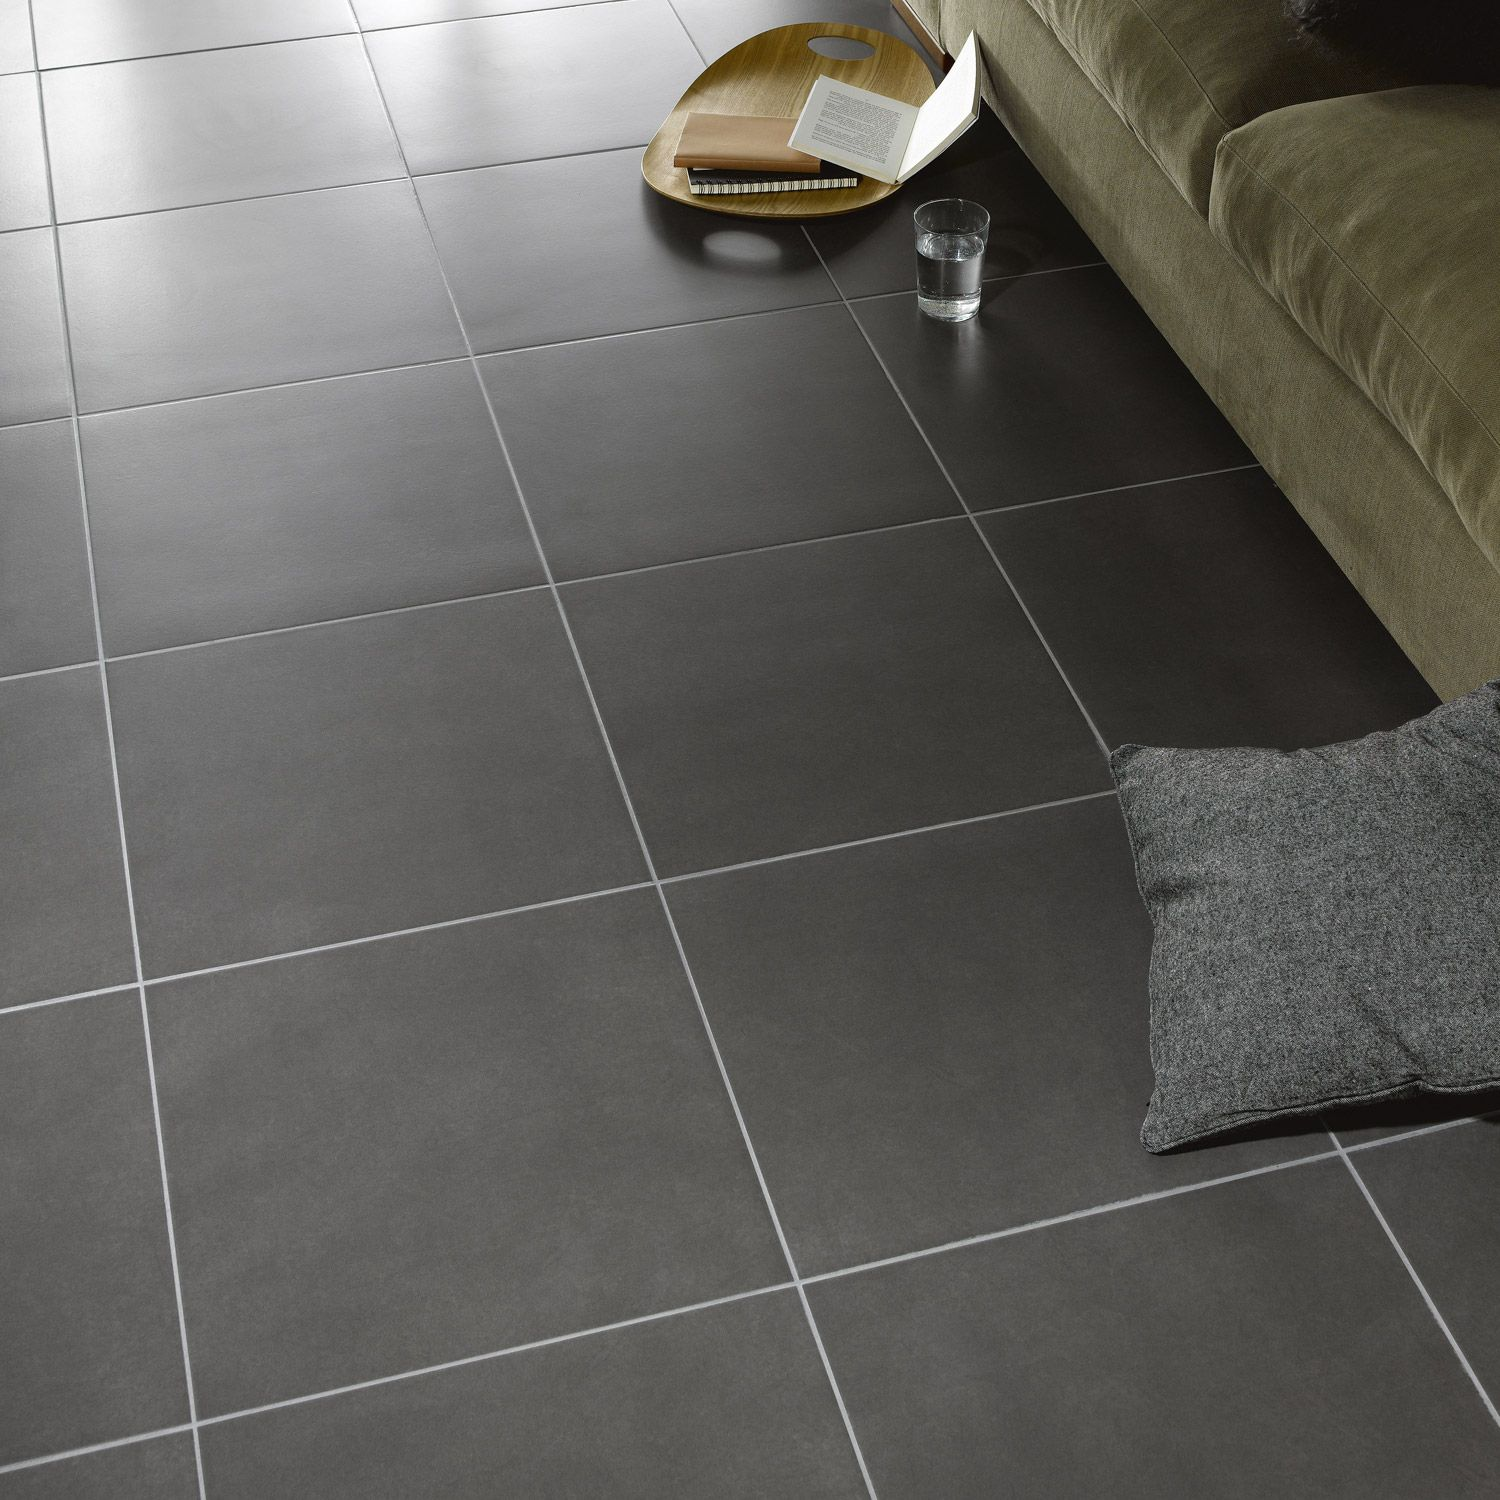 Carrelage Gris Anthracite Salissant Carrelage Sol Gris Magasin Guerande Bricolage With